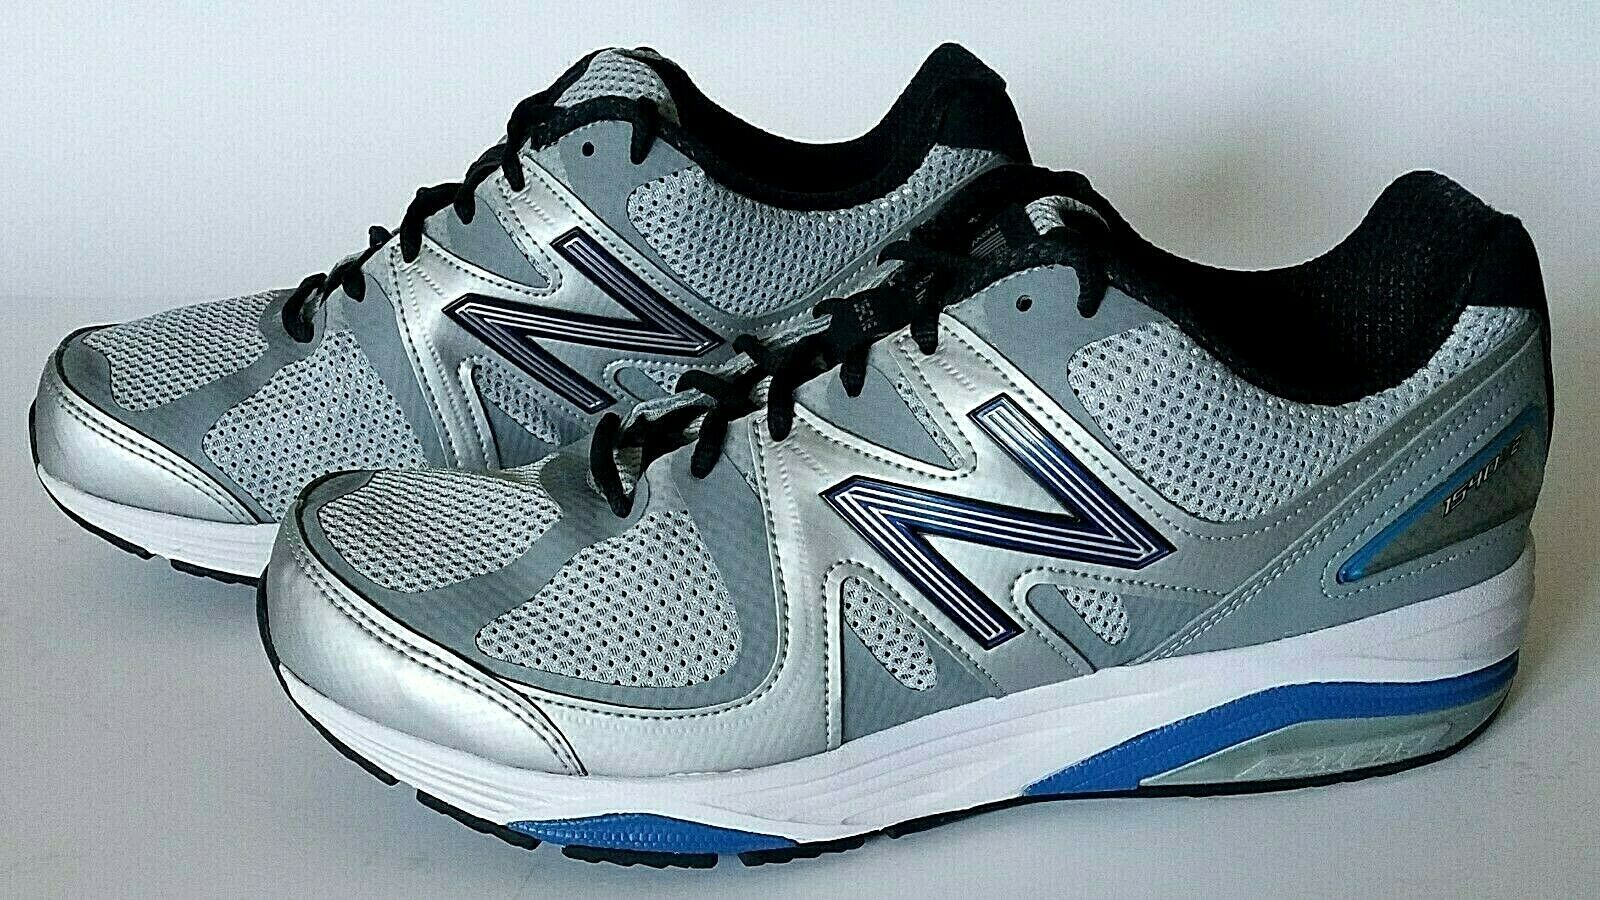 New Balance 1540v2 Mens Size 9.5(4E) Extra Wide, Silver bluee shoes M1540SB2